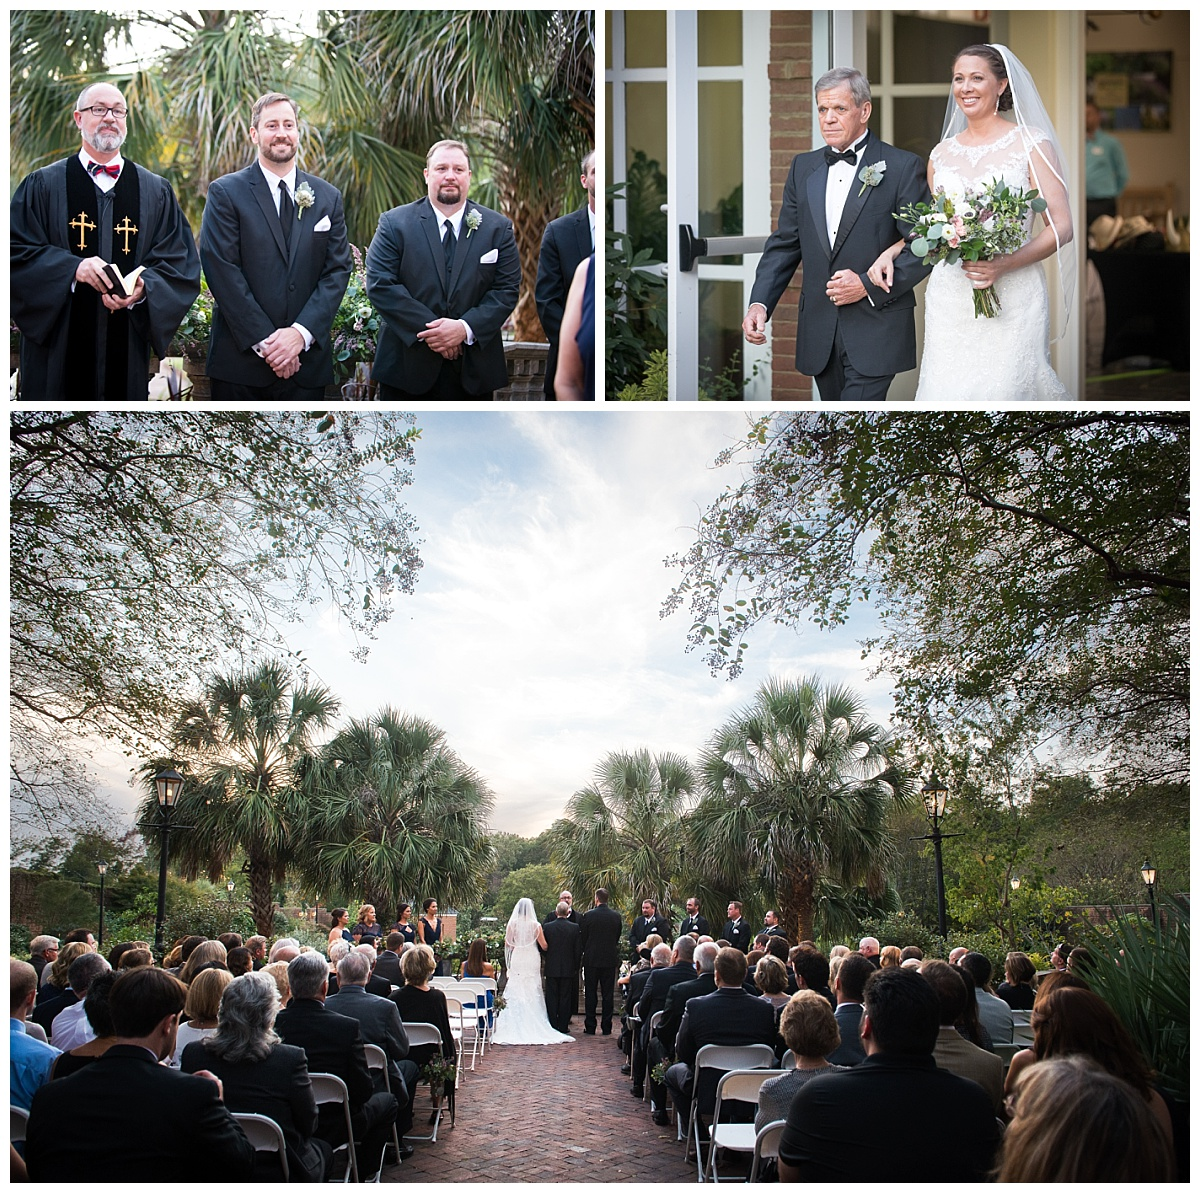 RIverbanks zoo and gardens wedding ceremony